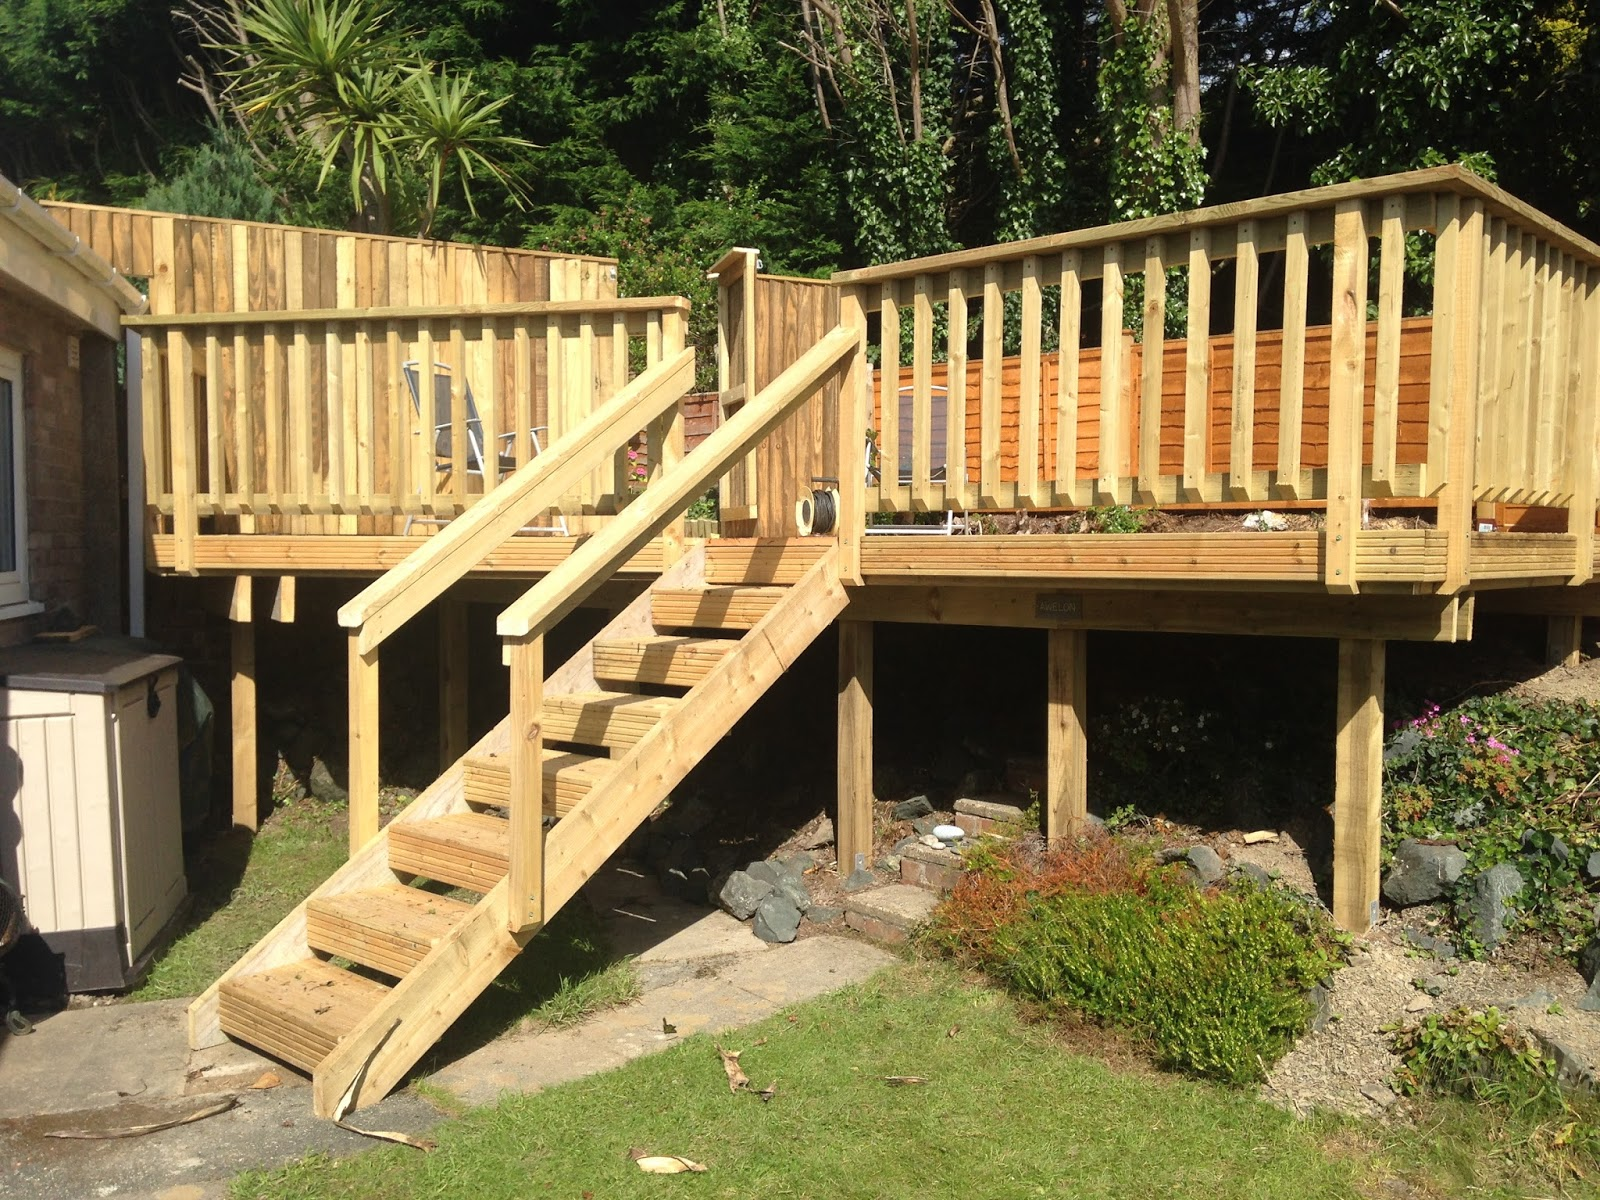 Garden carpentry timber decking design and build our for Images of garden decking